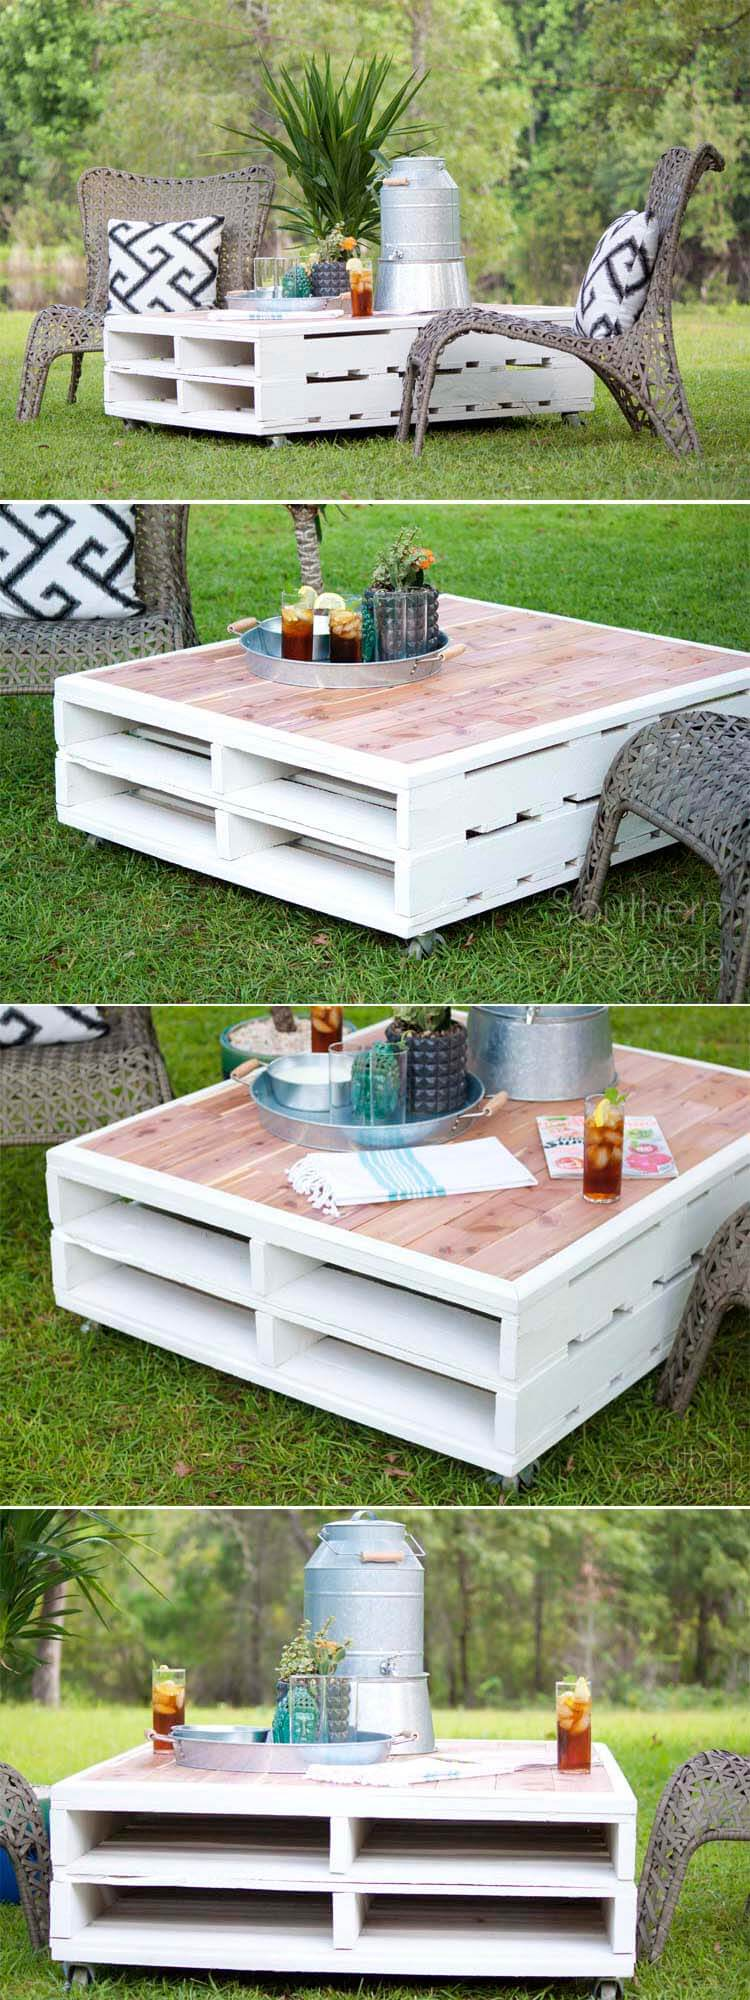 27 Best Outdoor Pallet Furniture Ideas and Designs for 2021 on Pallets Design Ideas  id=17075